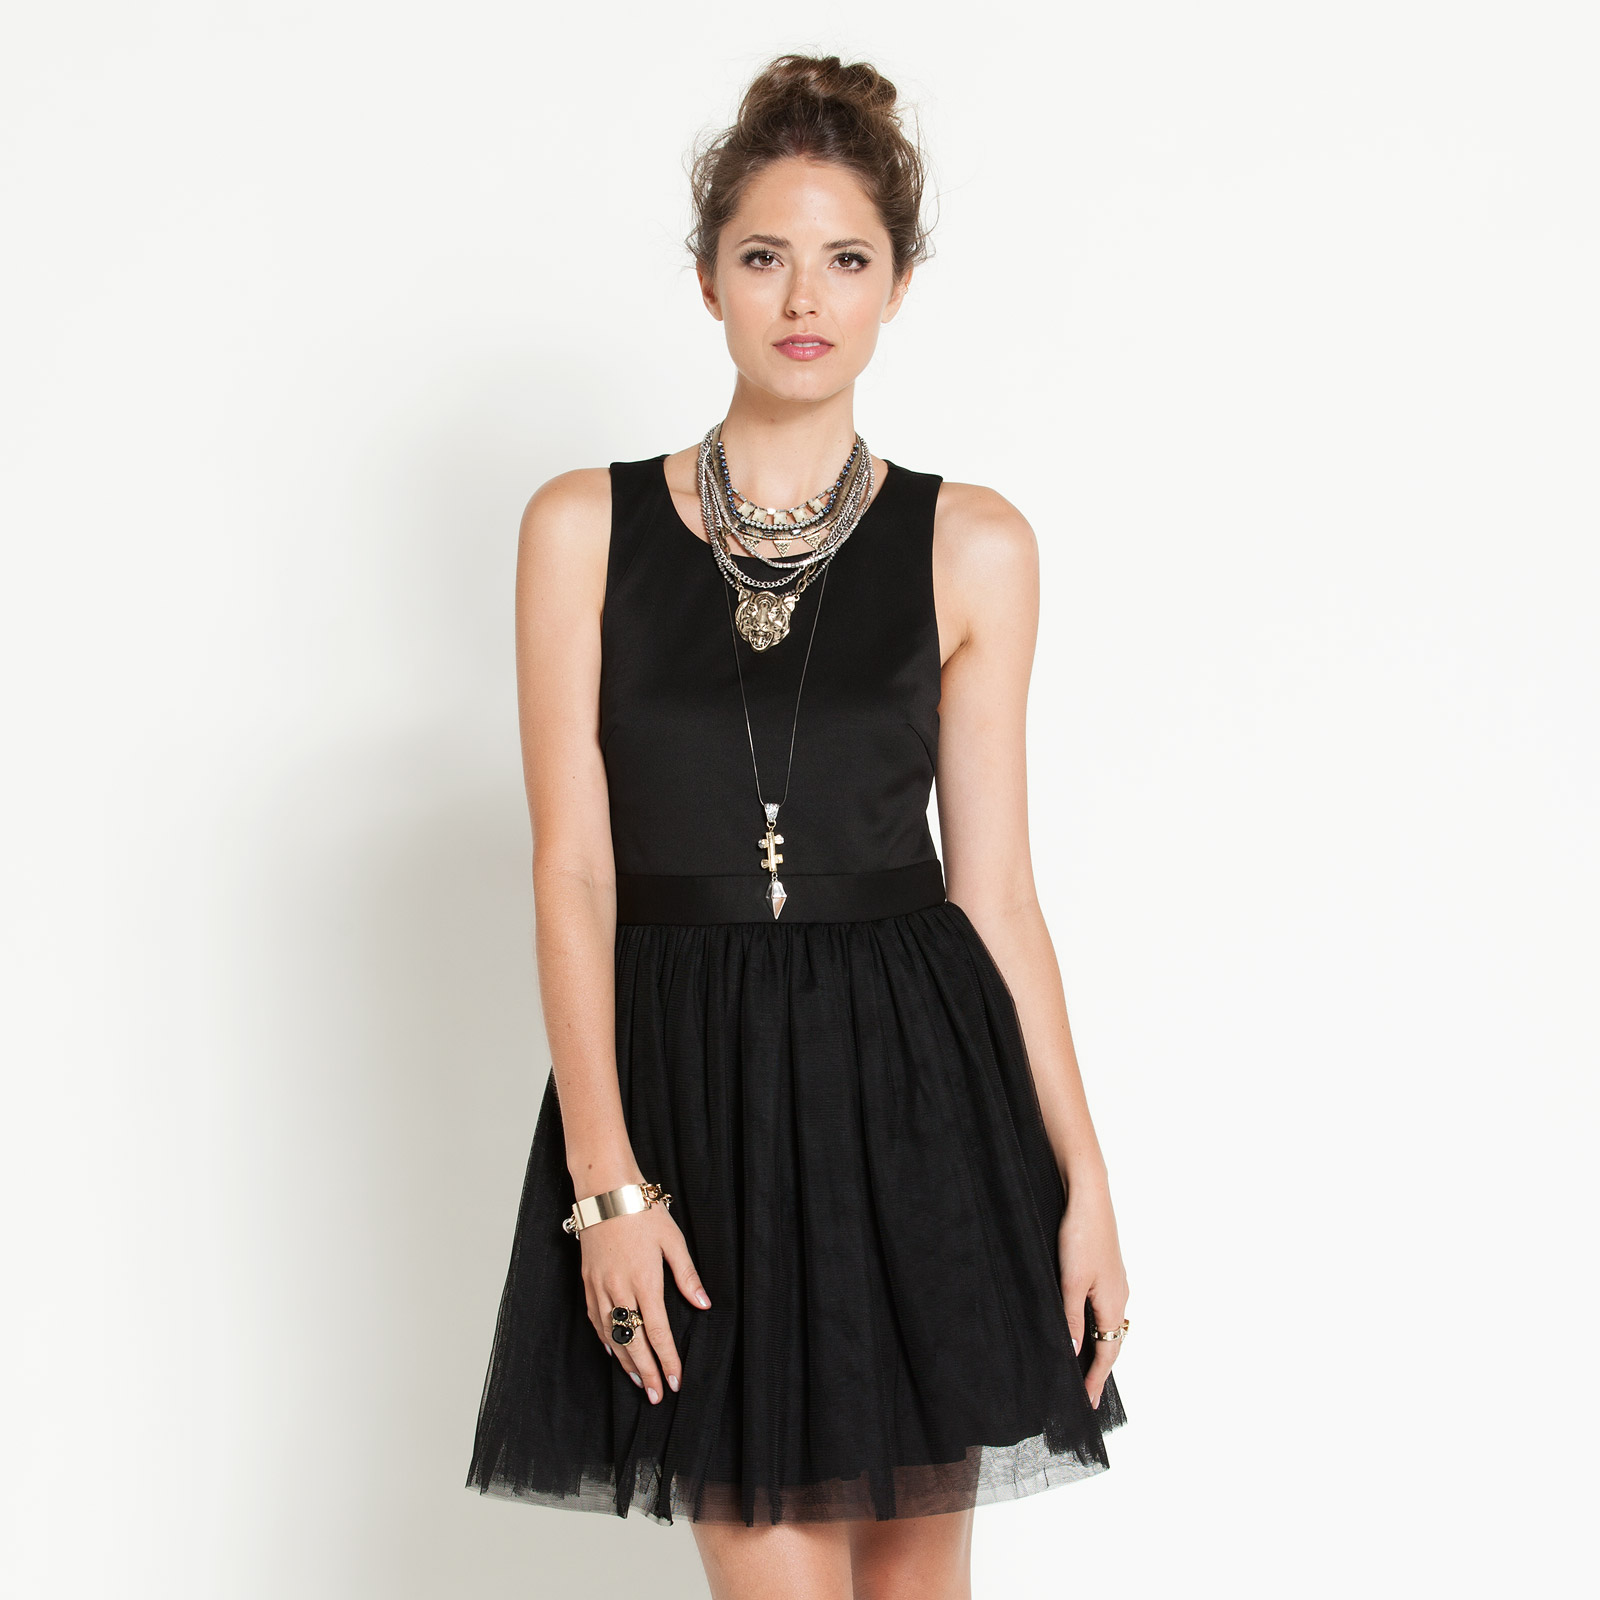 New Year Party Dresses Of Women Fashion Party Dresses For Women For Different Occasions